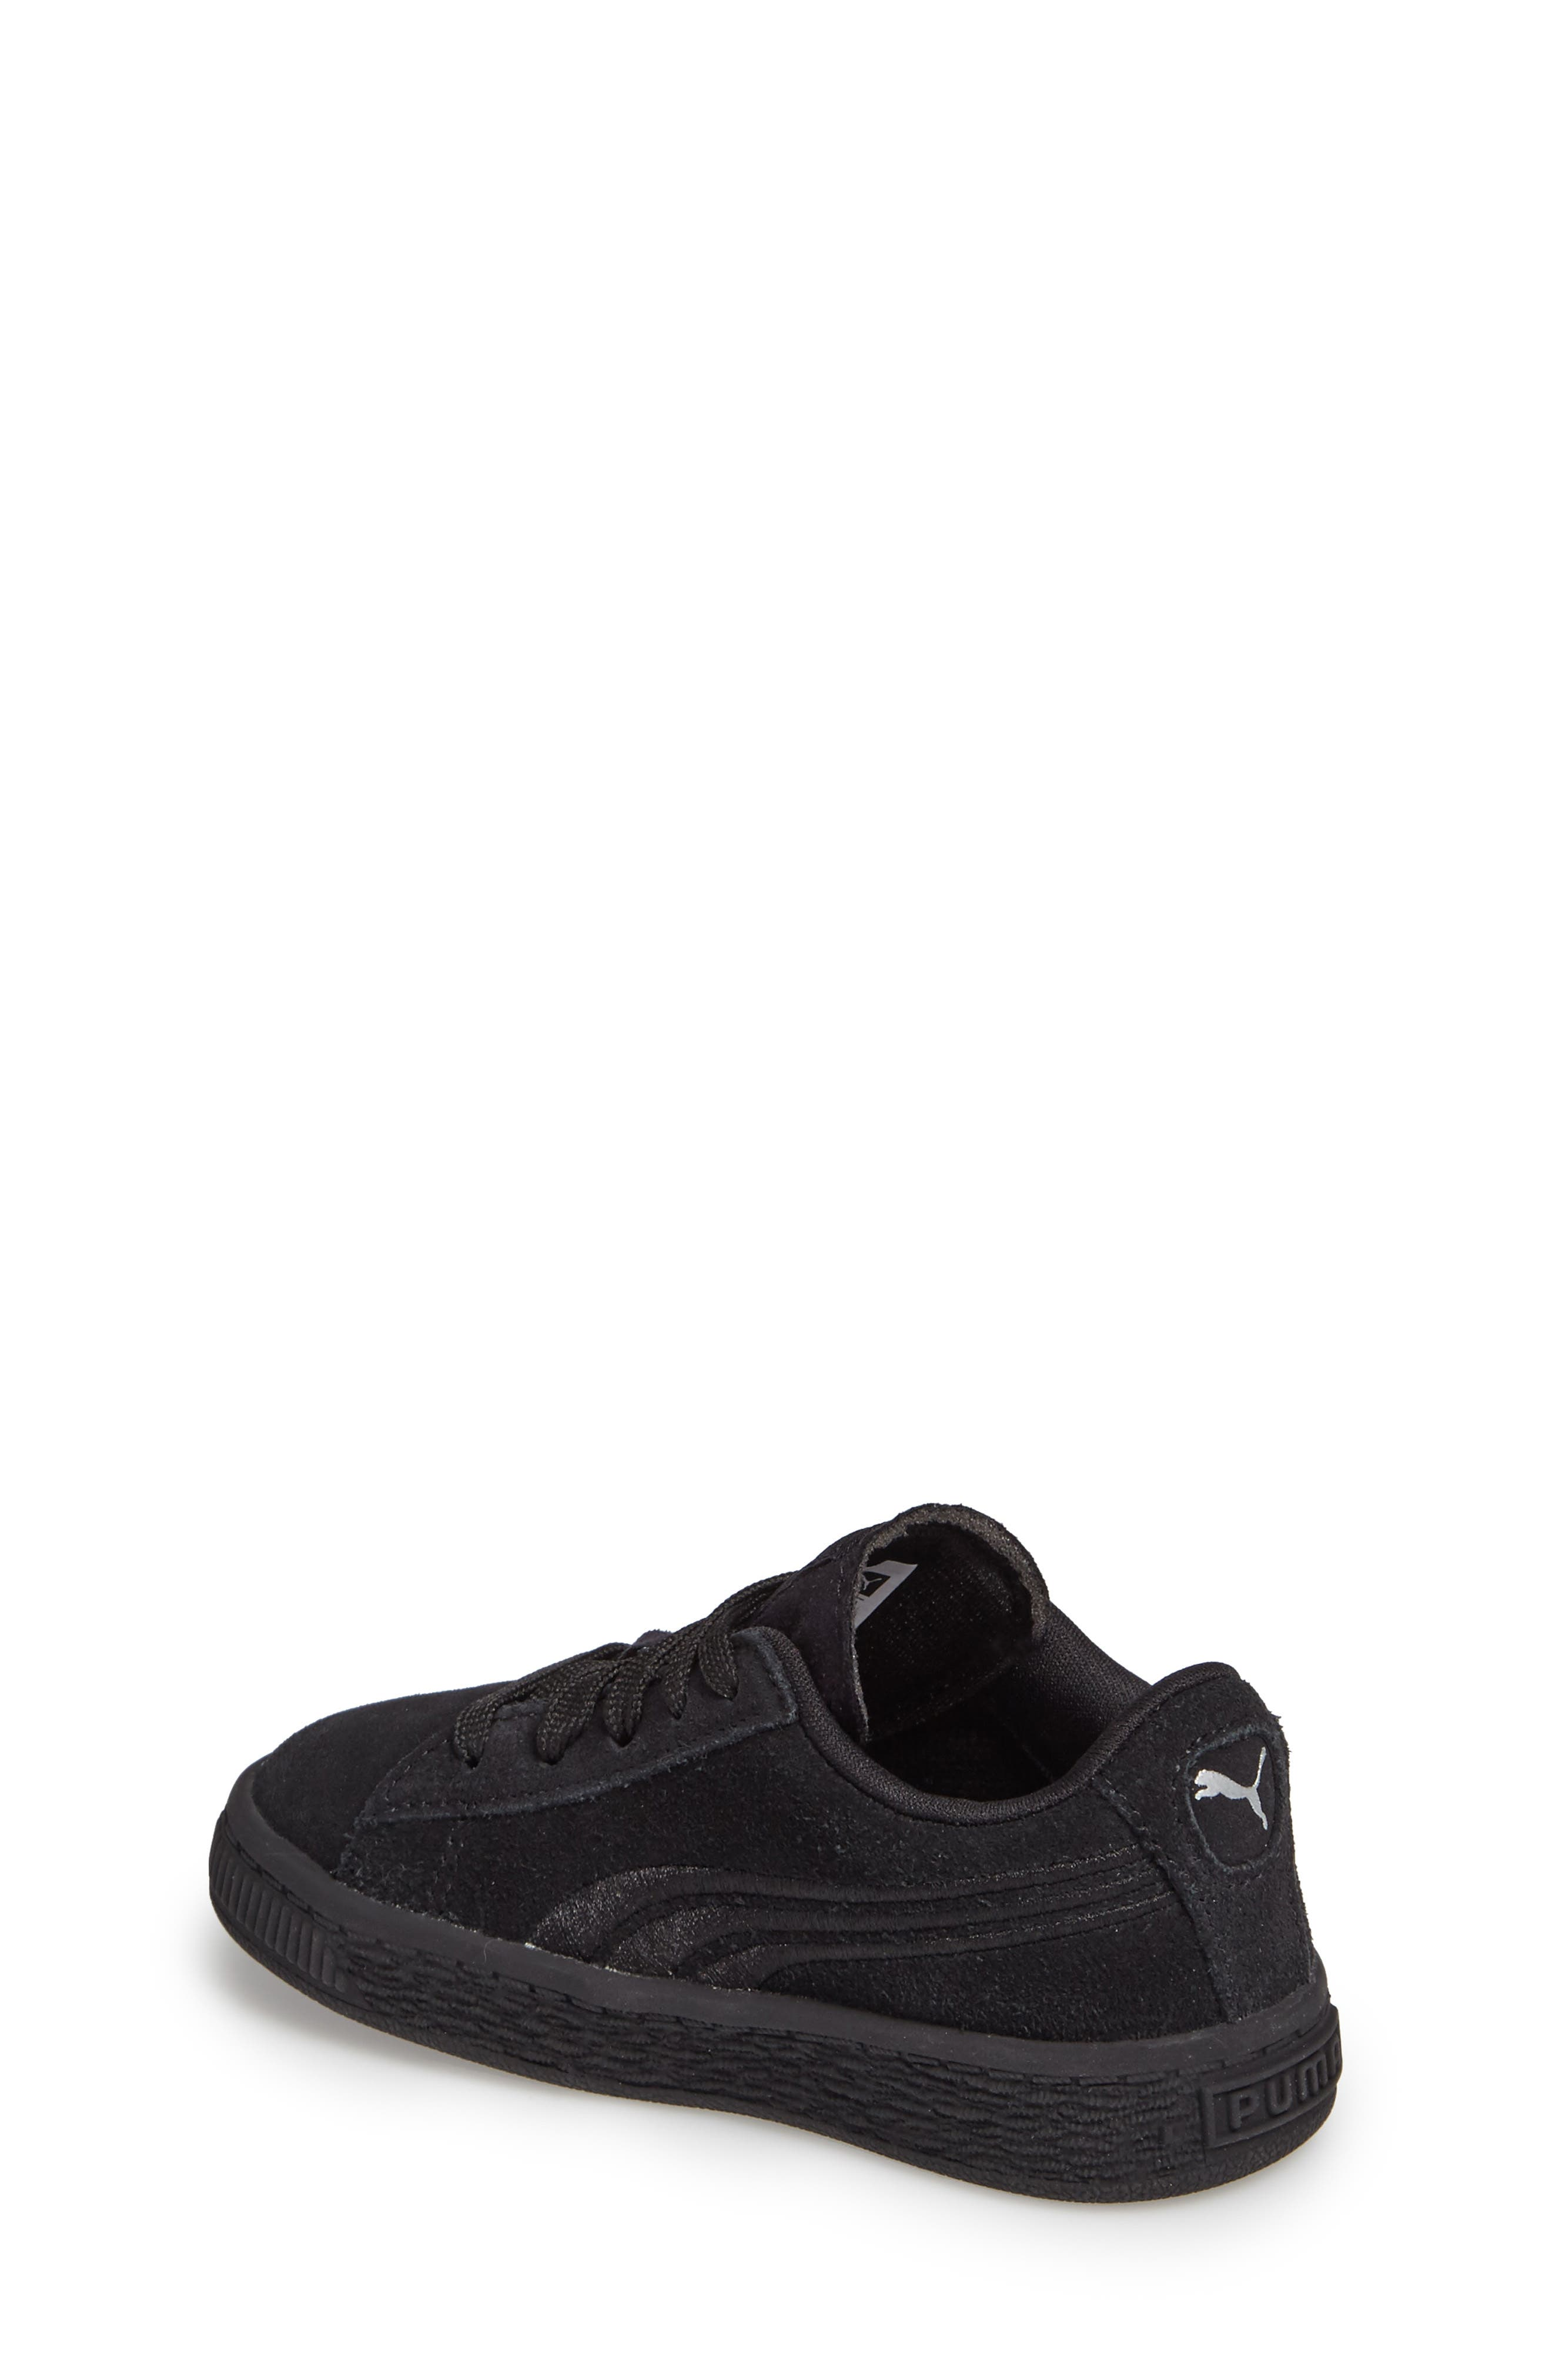 Suede Classic Sneaker,                             Alternate thumbnail 2, color,                             001